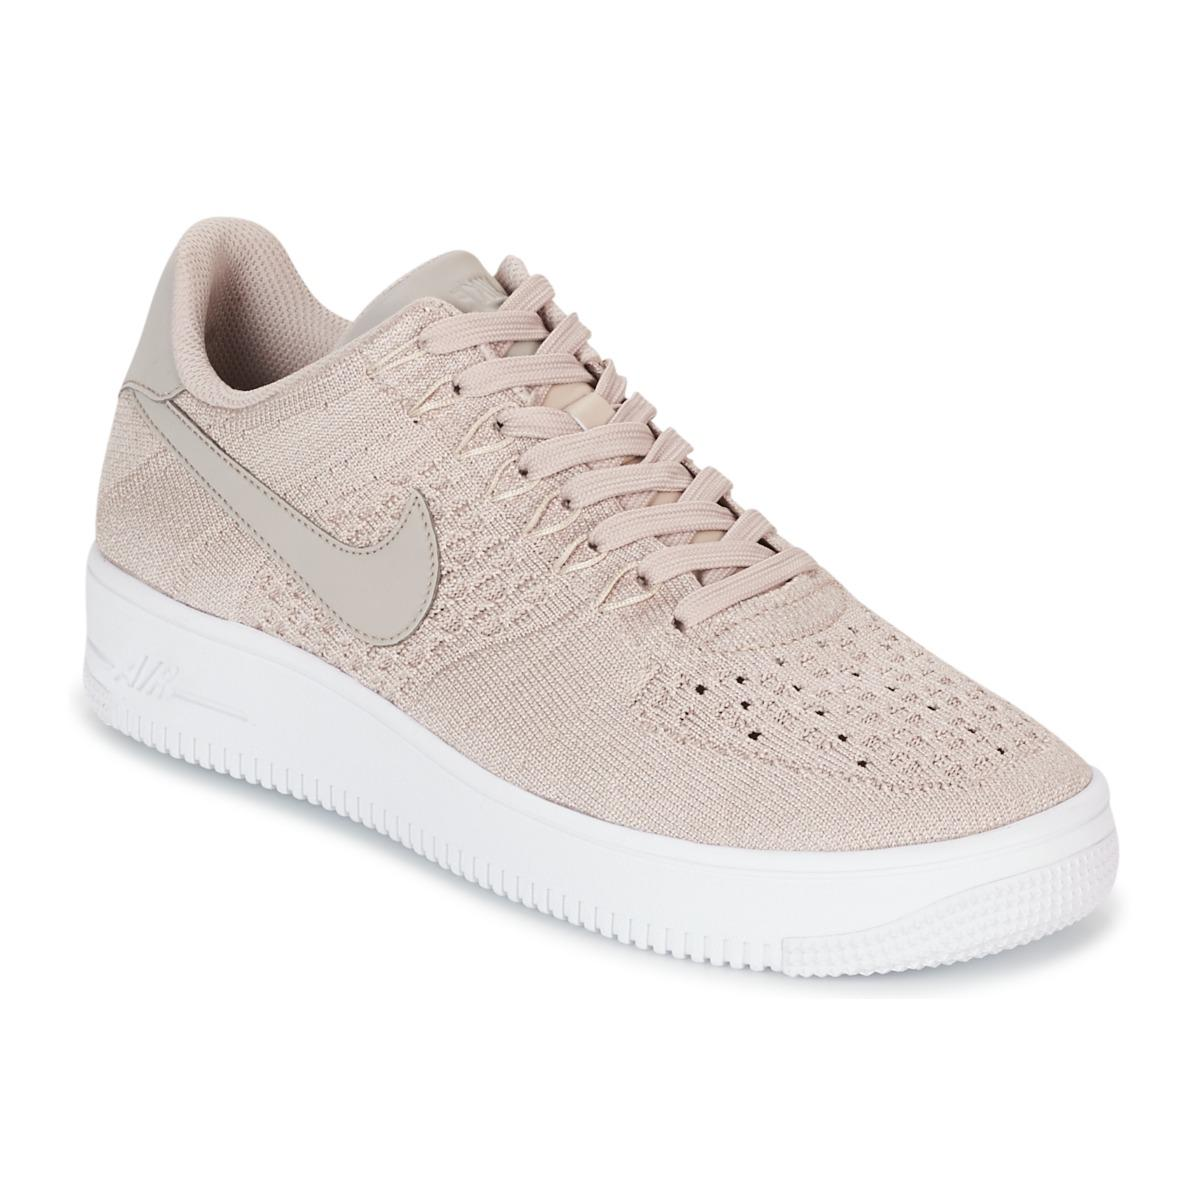 624869c0e242 reduced nike air force 1 flyknit low pink grey 33912 49364